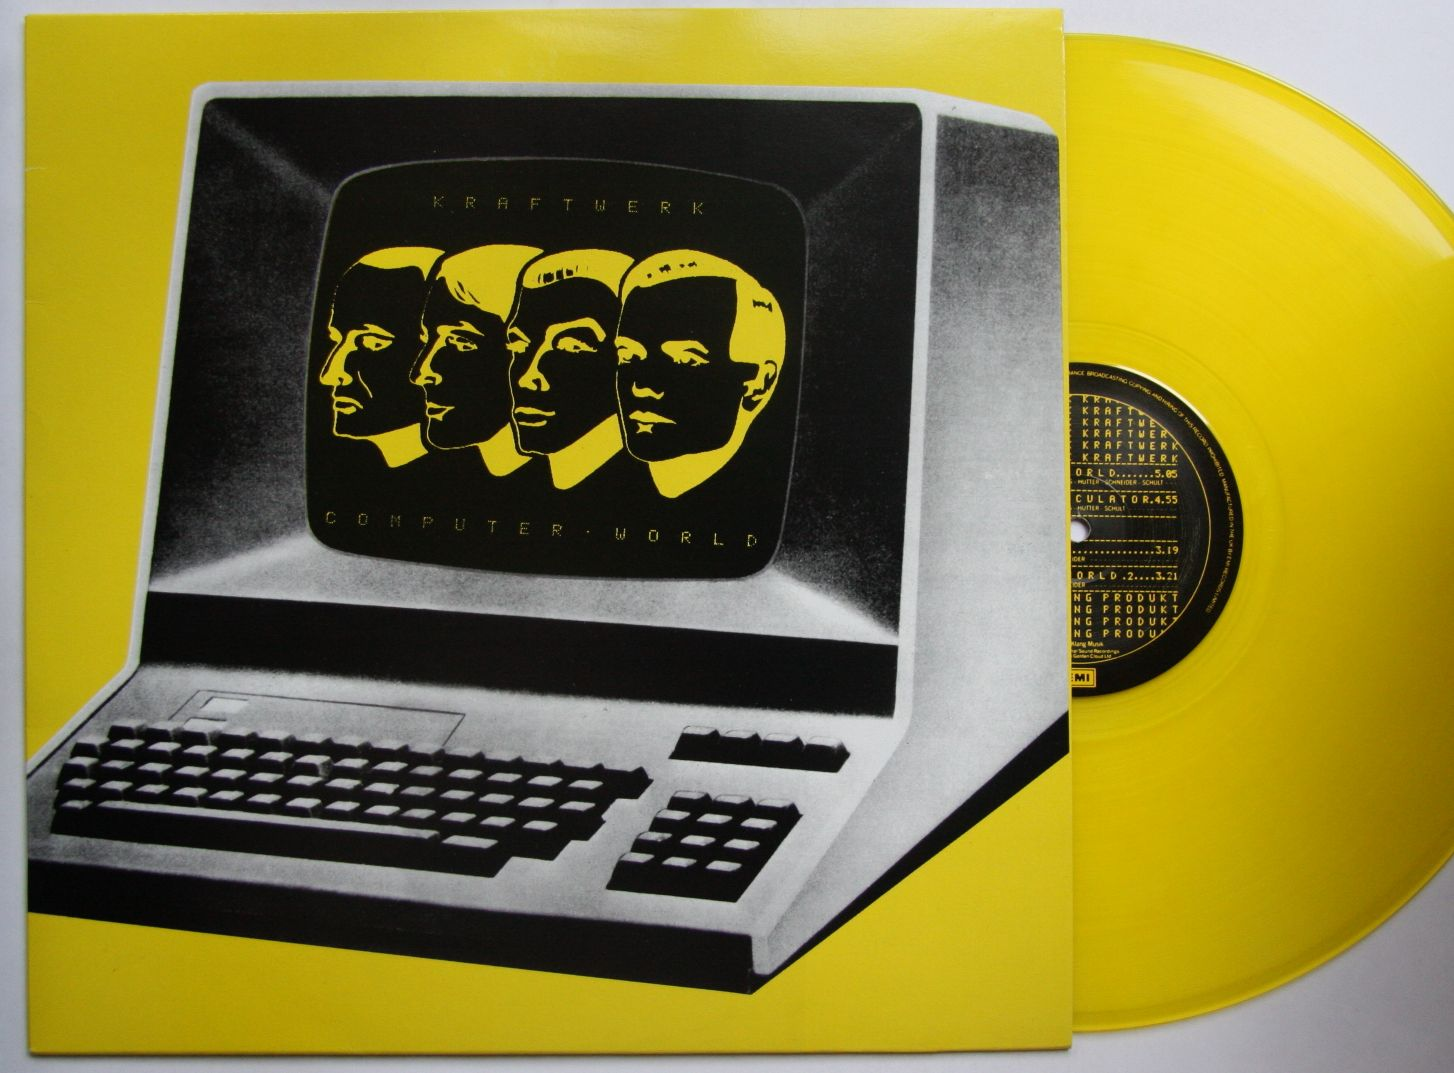 Kraftwerk - Computer World Single